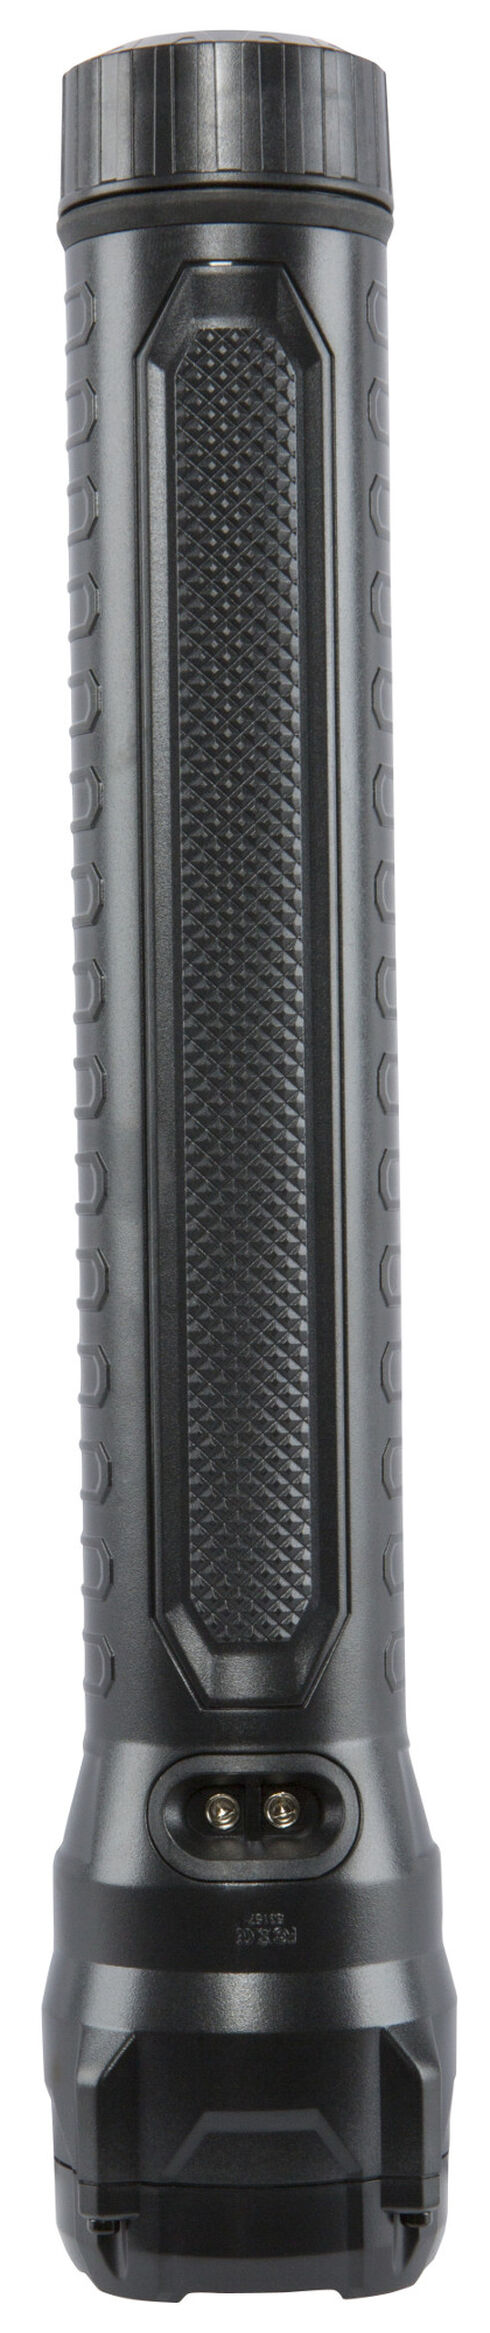 5.11 Tactical TPT R7 14 Flashlight, Black, hi-res